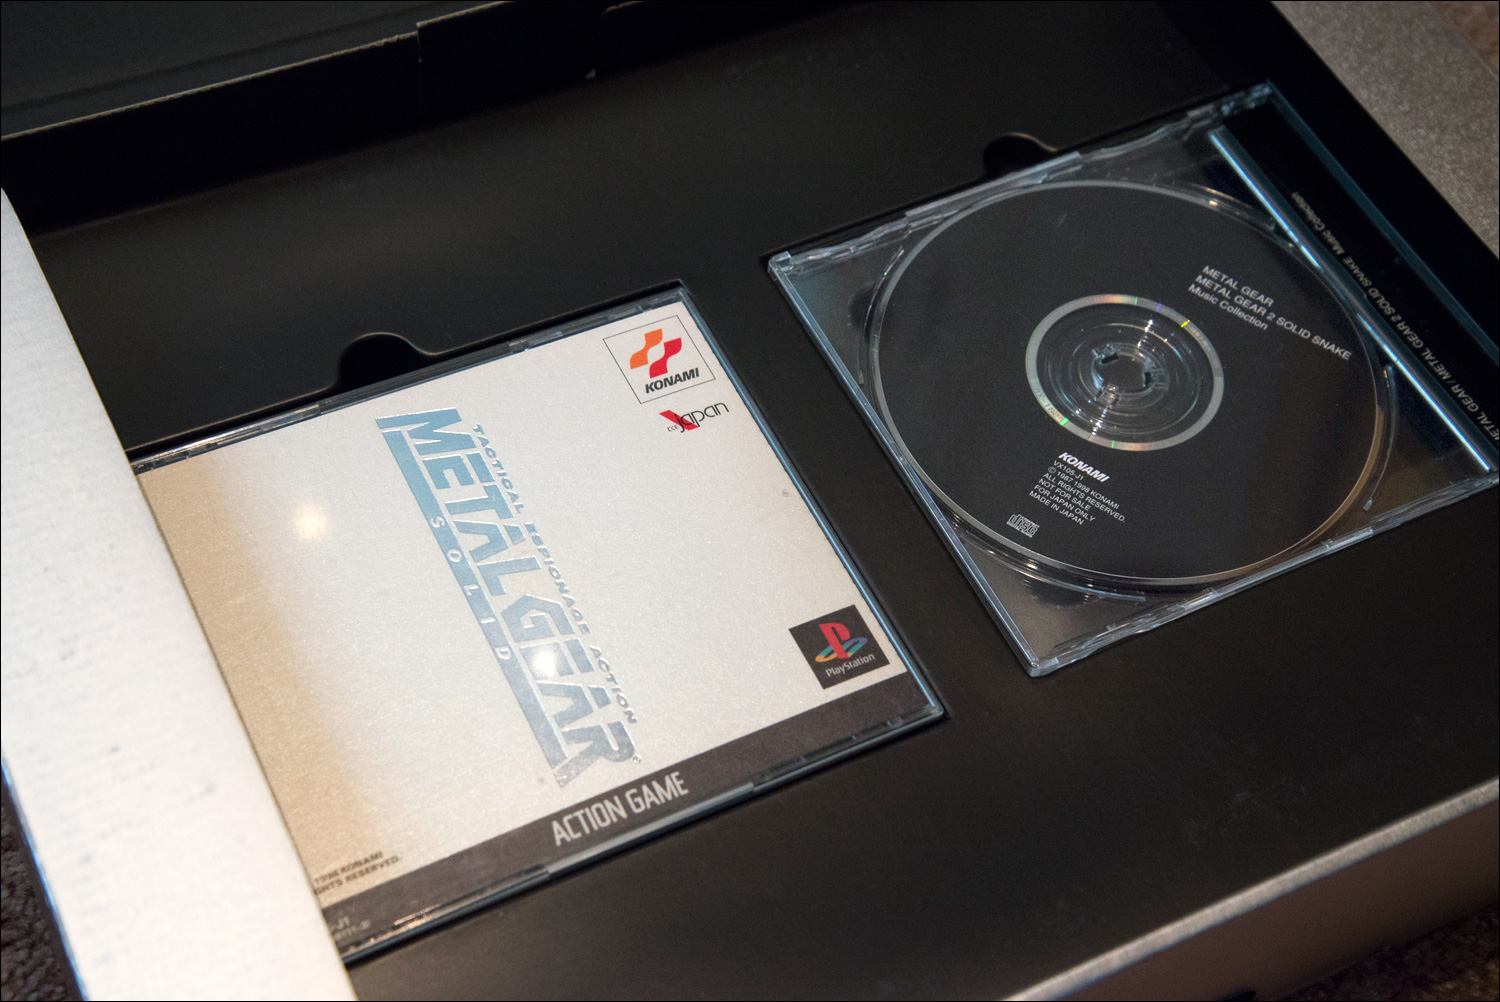 Metal-Gear-Solid-Premium-Package-Discs